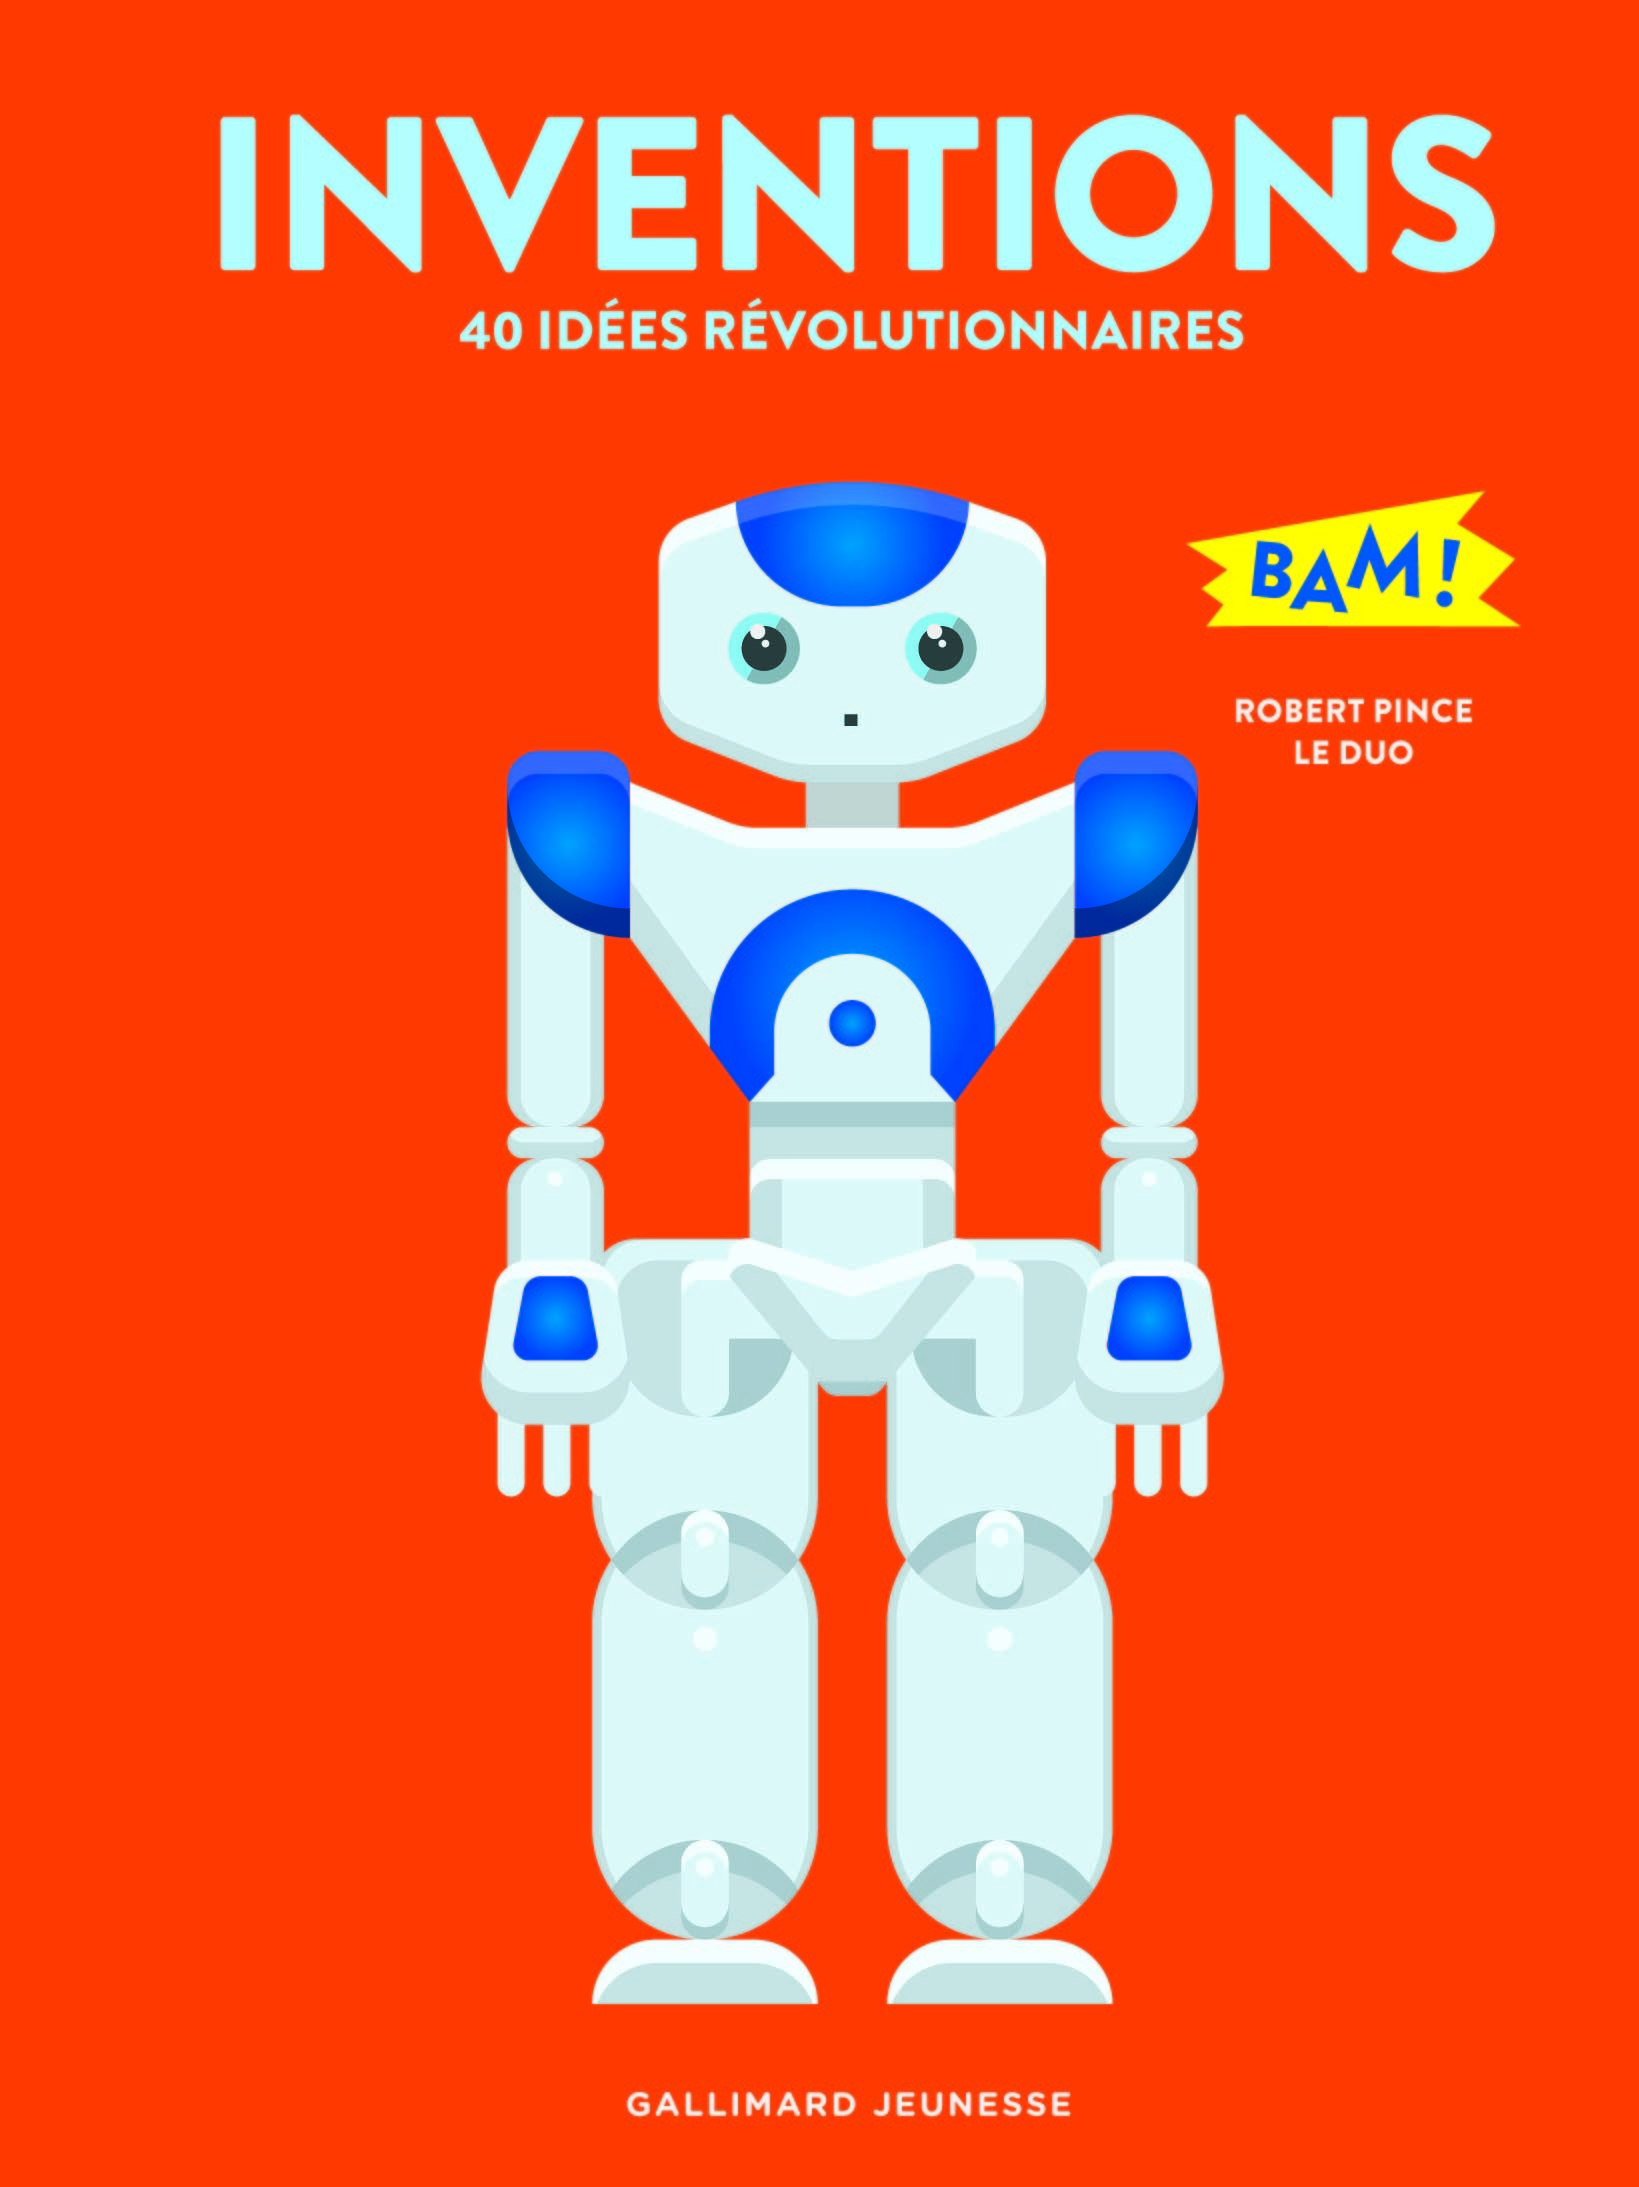 INVENTIONS - 40 IDEES REVOLUTIONNAIRES